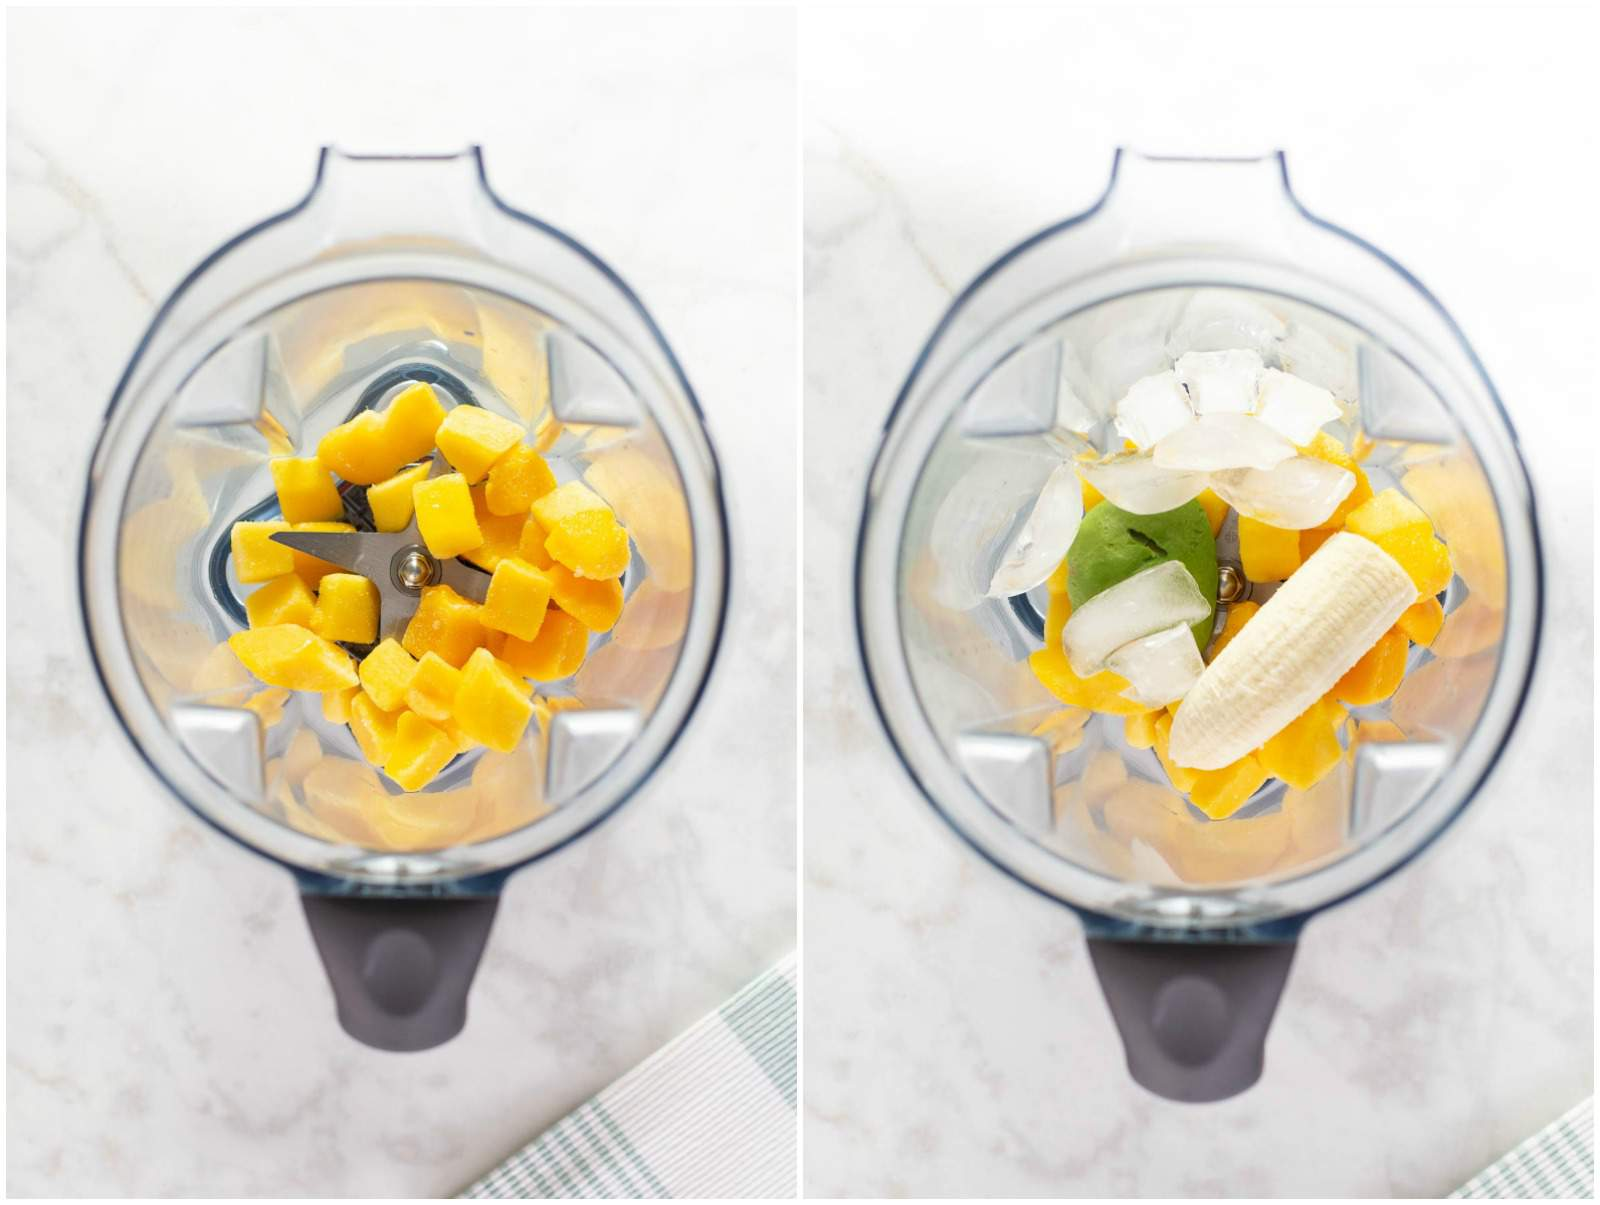 adding ingredients for smoothie to blender